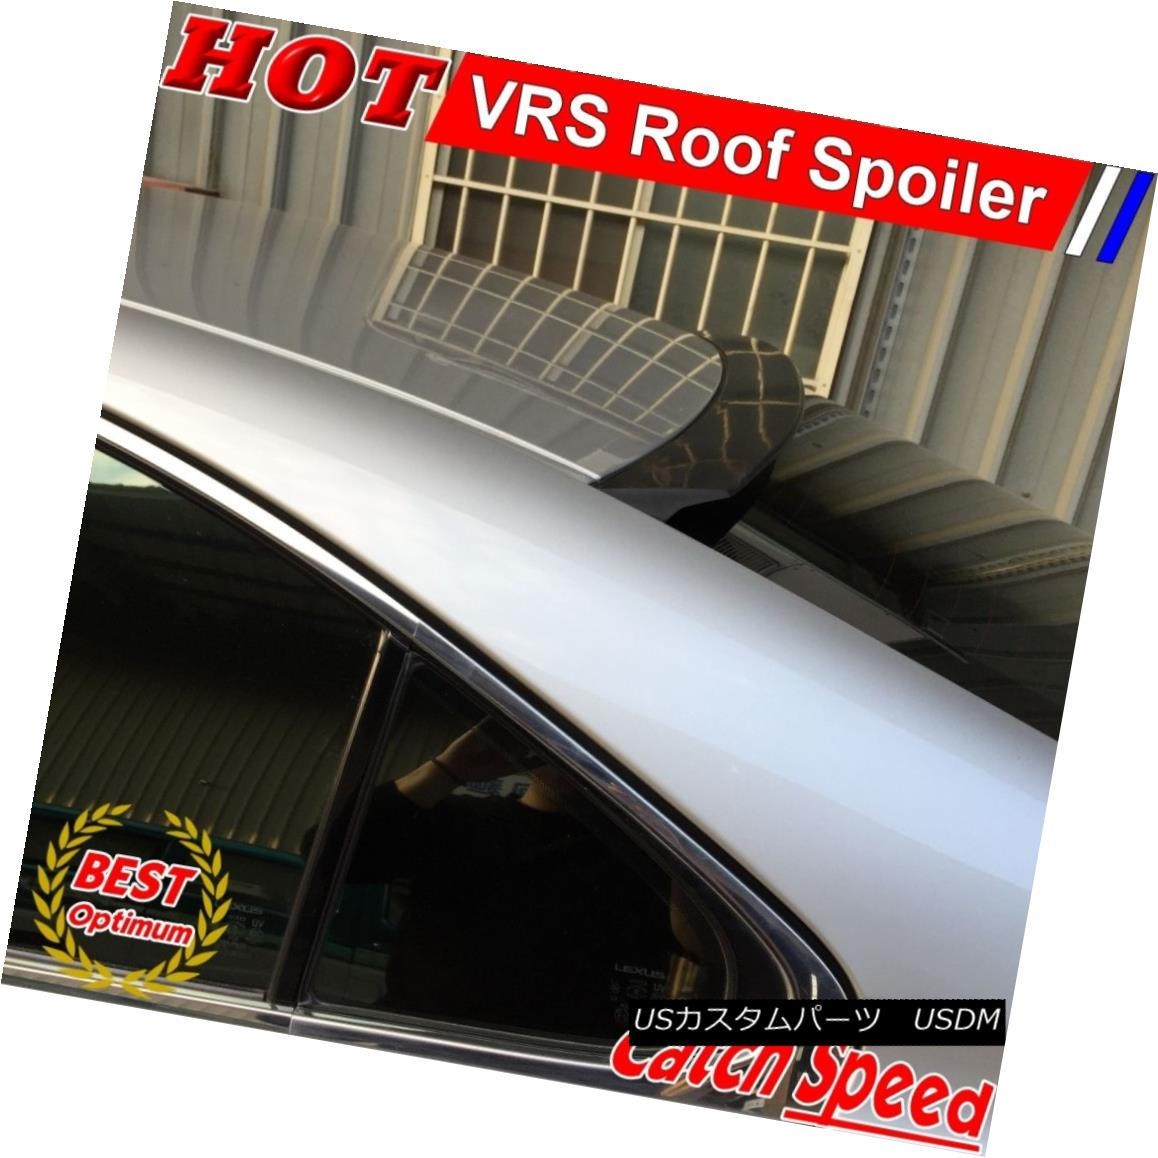 エアロパーツ Painted VRS Type Rear Roof Spoiler Wing For VOLKSWAGEN VENTO Sedan 2010-2015 VOLKSWAGEN VENTO Sedan 2010-2015塗装VRSタイプリアルーフスポイラーウィング